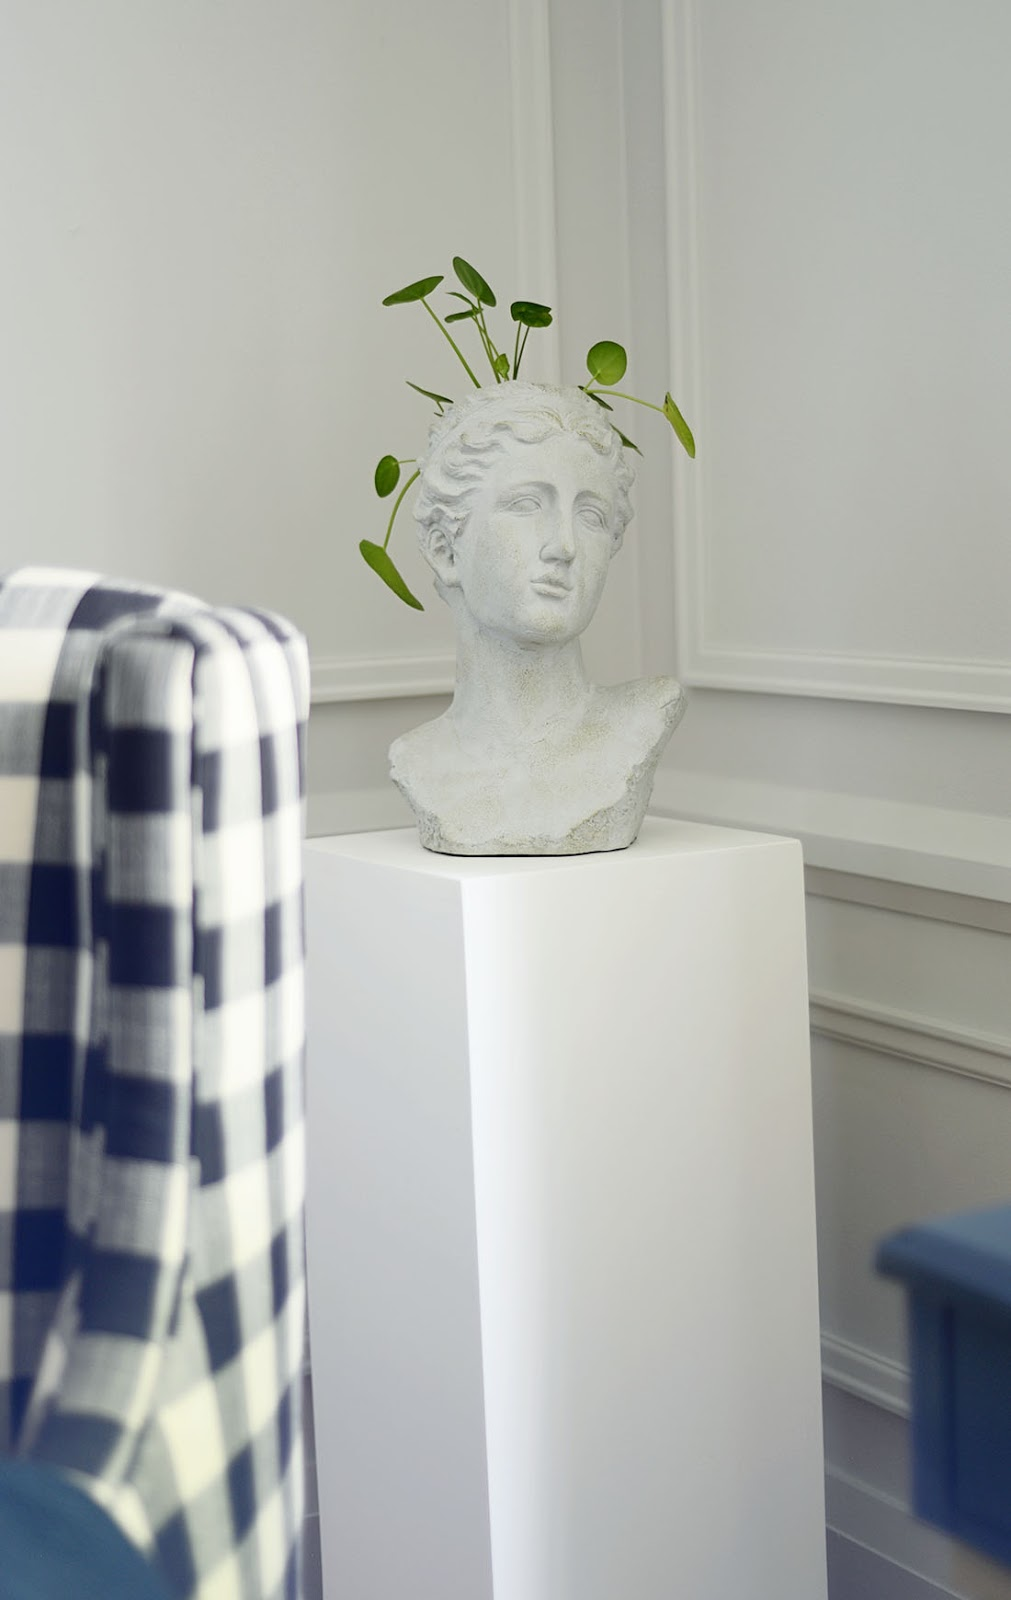 grecian bust vase, bust planter, planter on pedestal, moulding on walls, farrow and ball ammonite paint